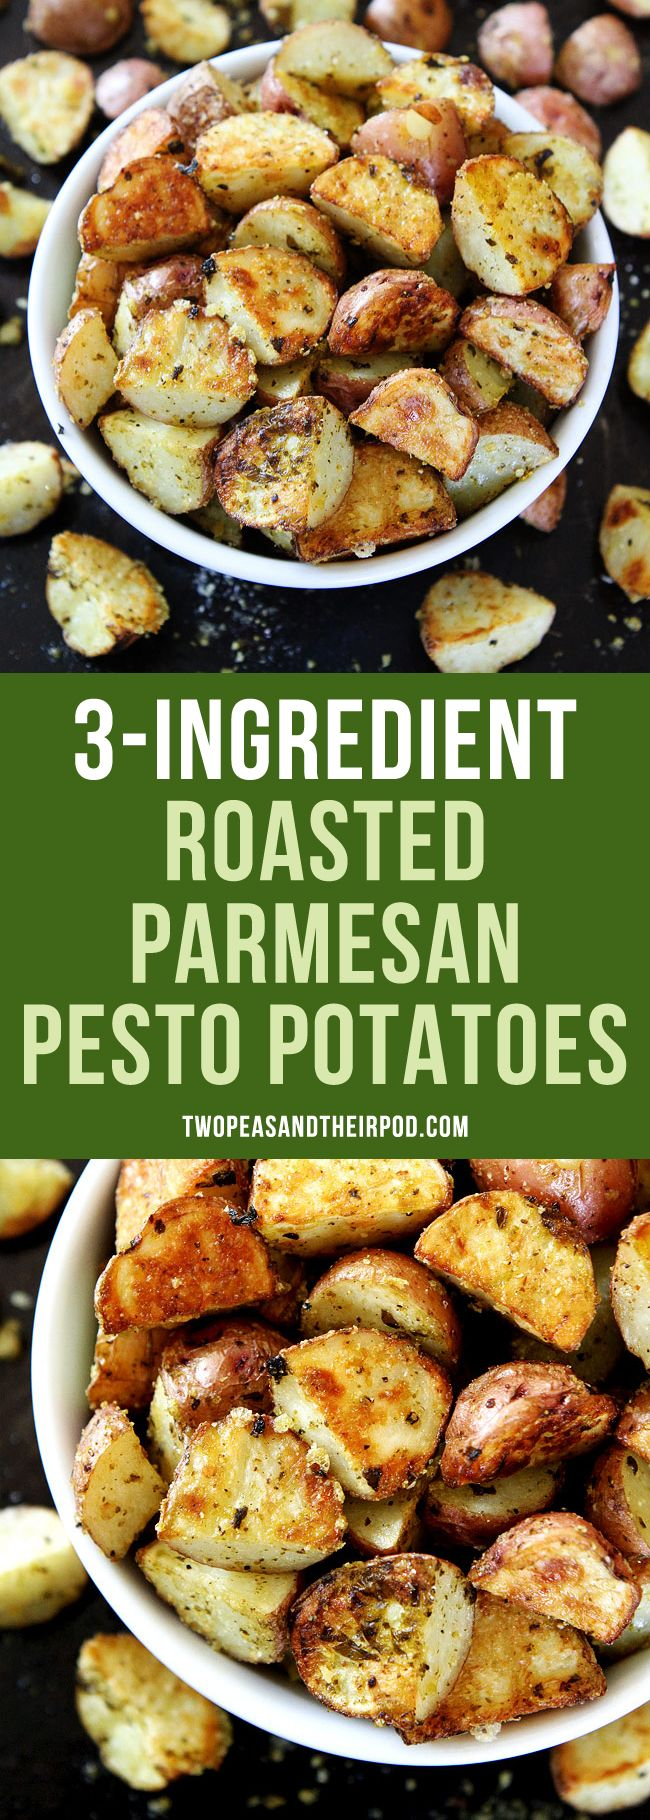 3-Ingredient Roasted Parmesan Pesto Potatoes You only need three ingredients to make these roasted potatoes. An easy side dish that goes great with any meal!